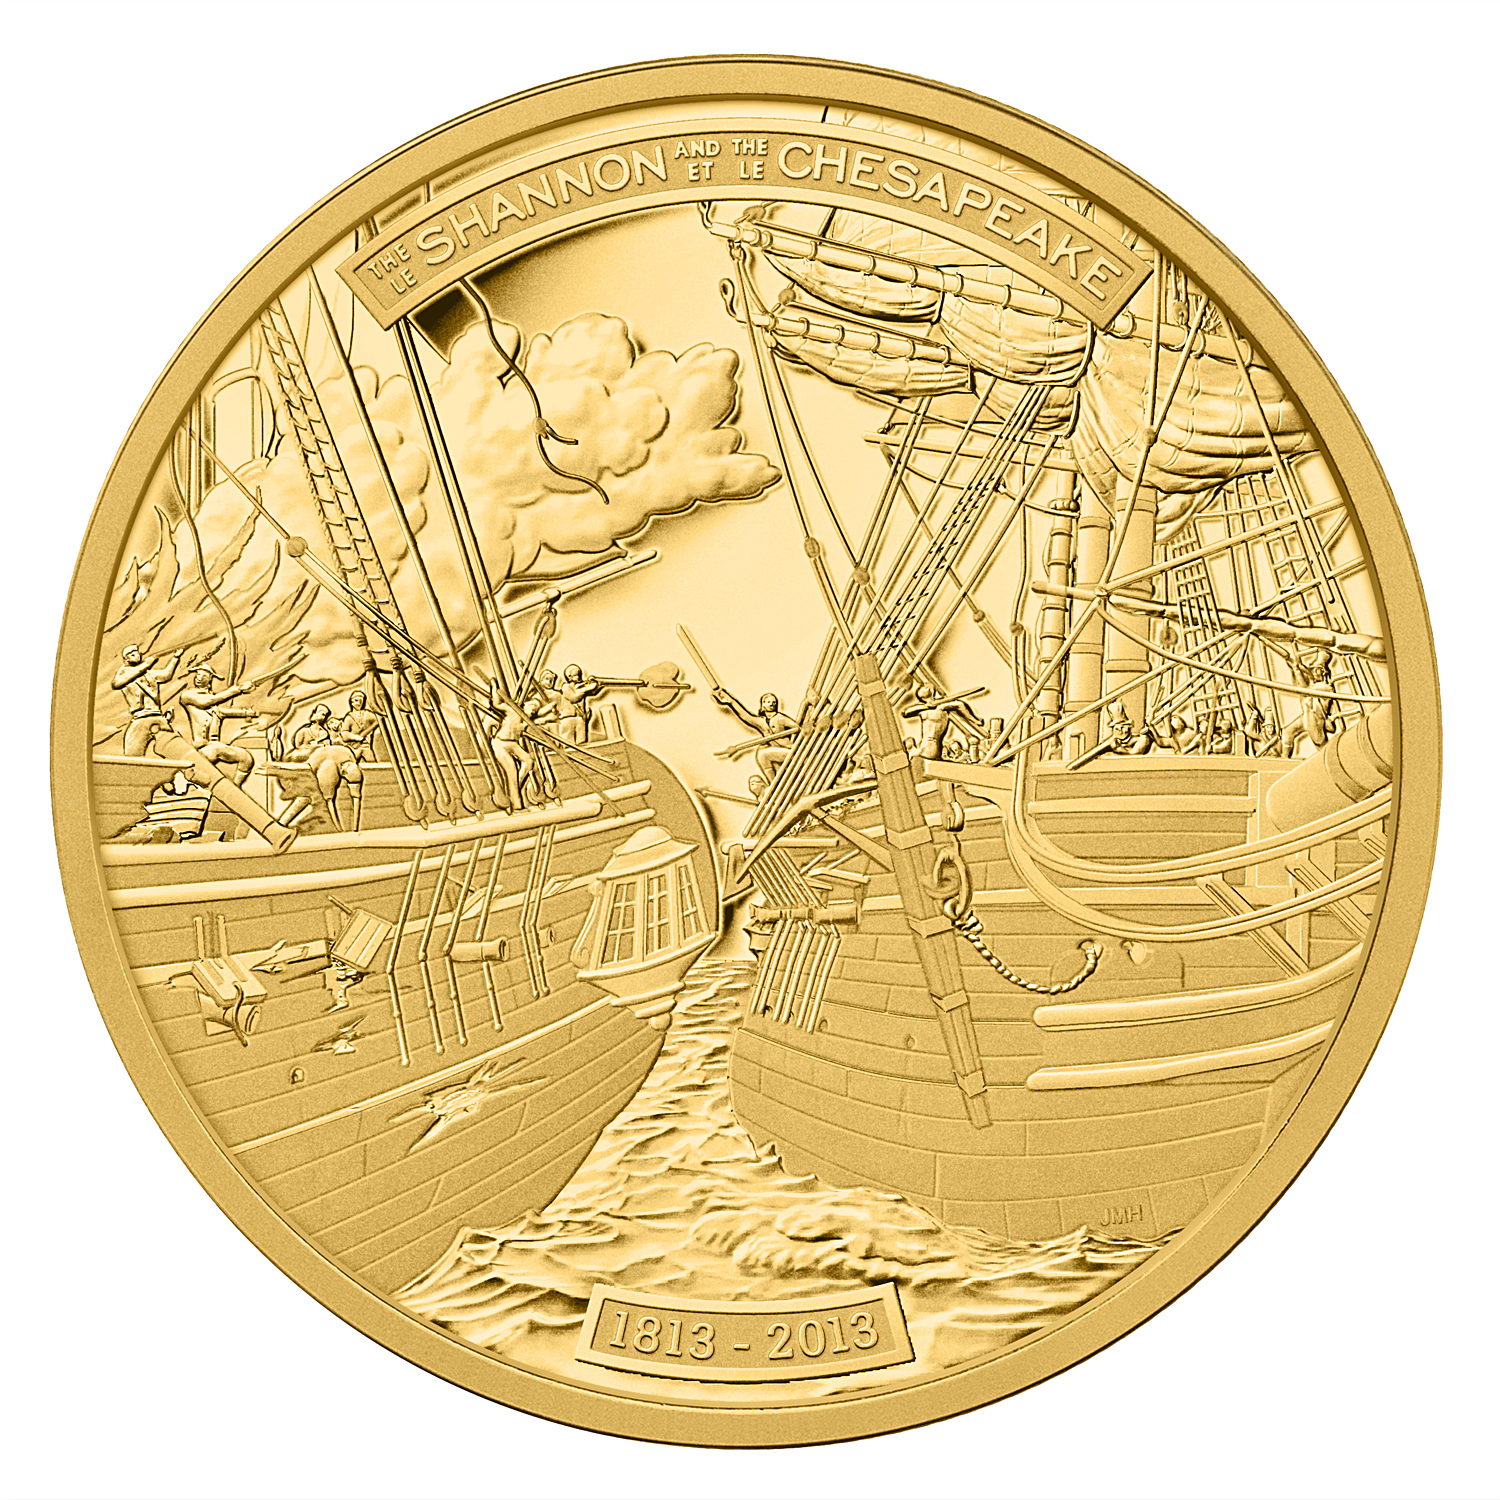 2013 Canada 5 oz Proof Gold $500 HMS Shannon & USS Chesapeake